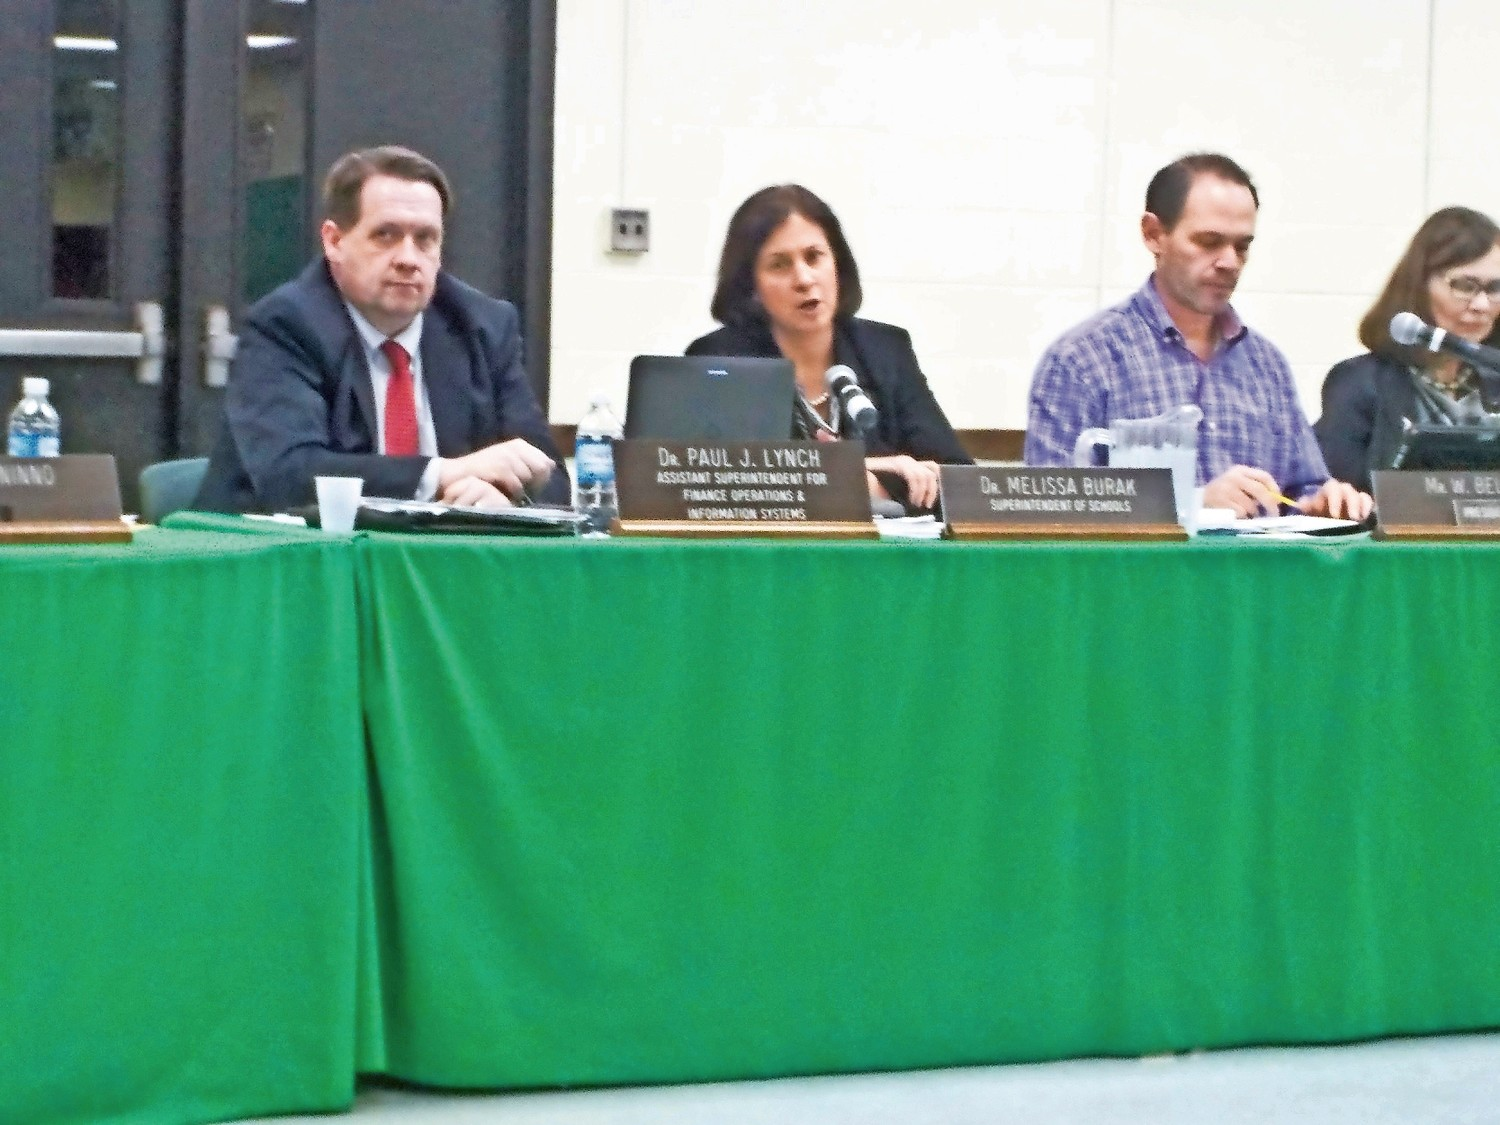 After a discussion among students, teachers, administrators and members of the Board of Education on Oct. 18, district officials decided to change how Regents exams are weighted.